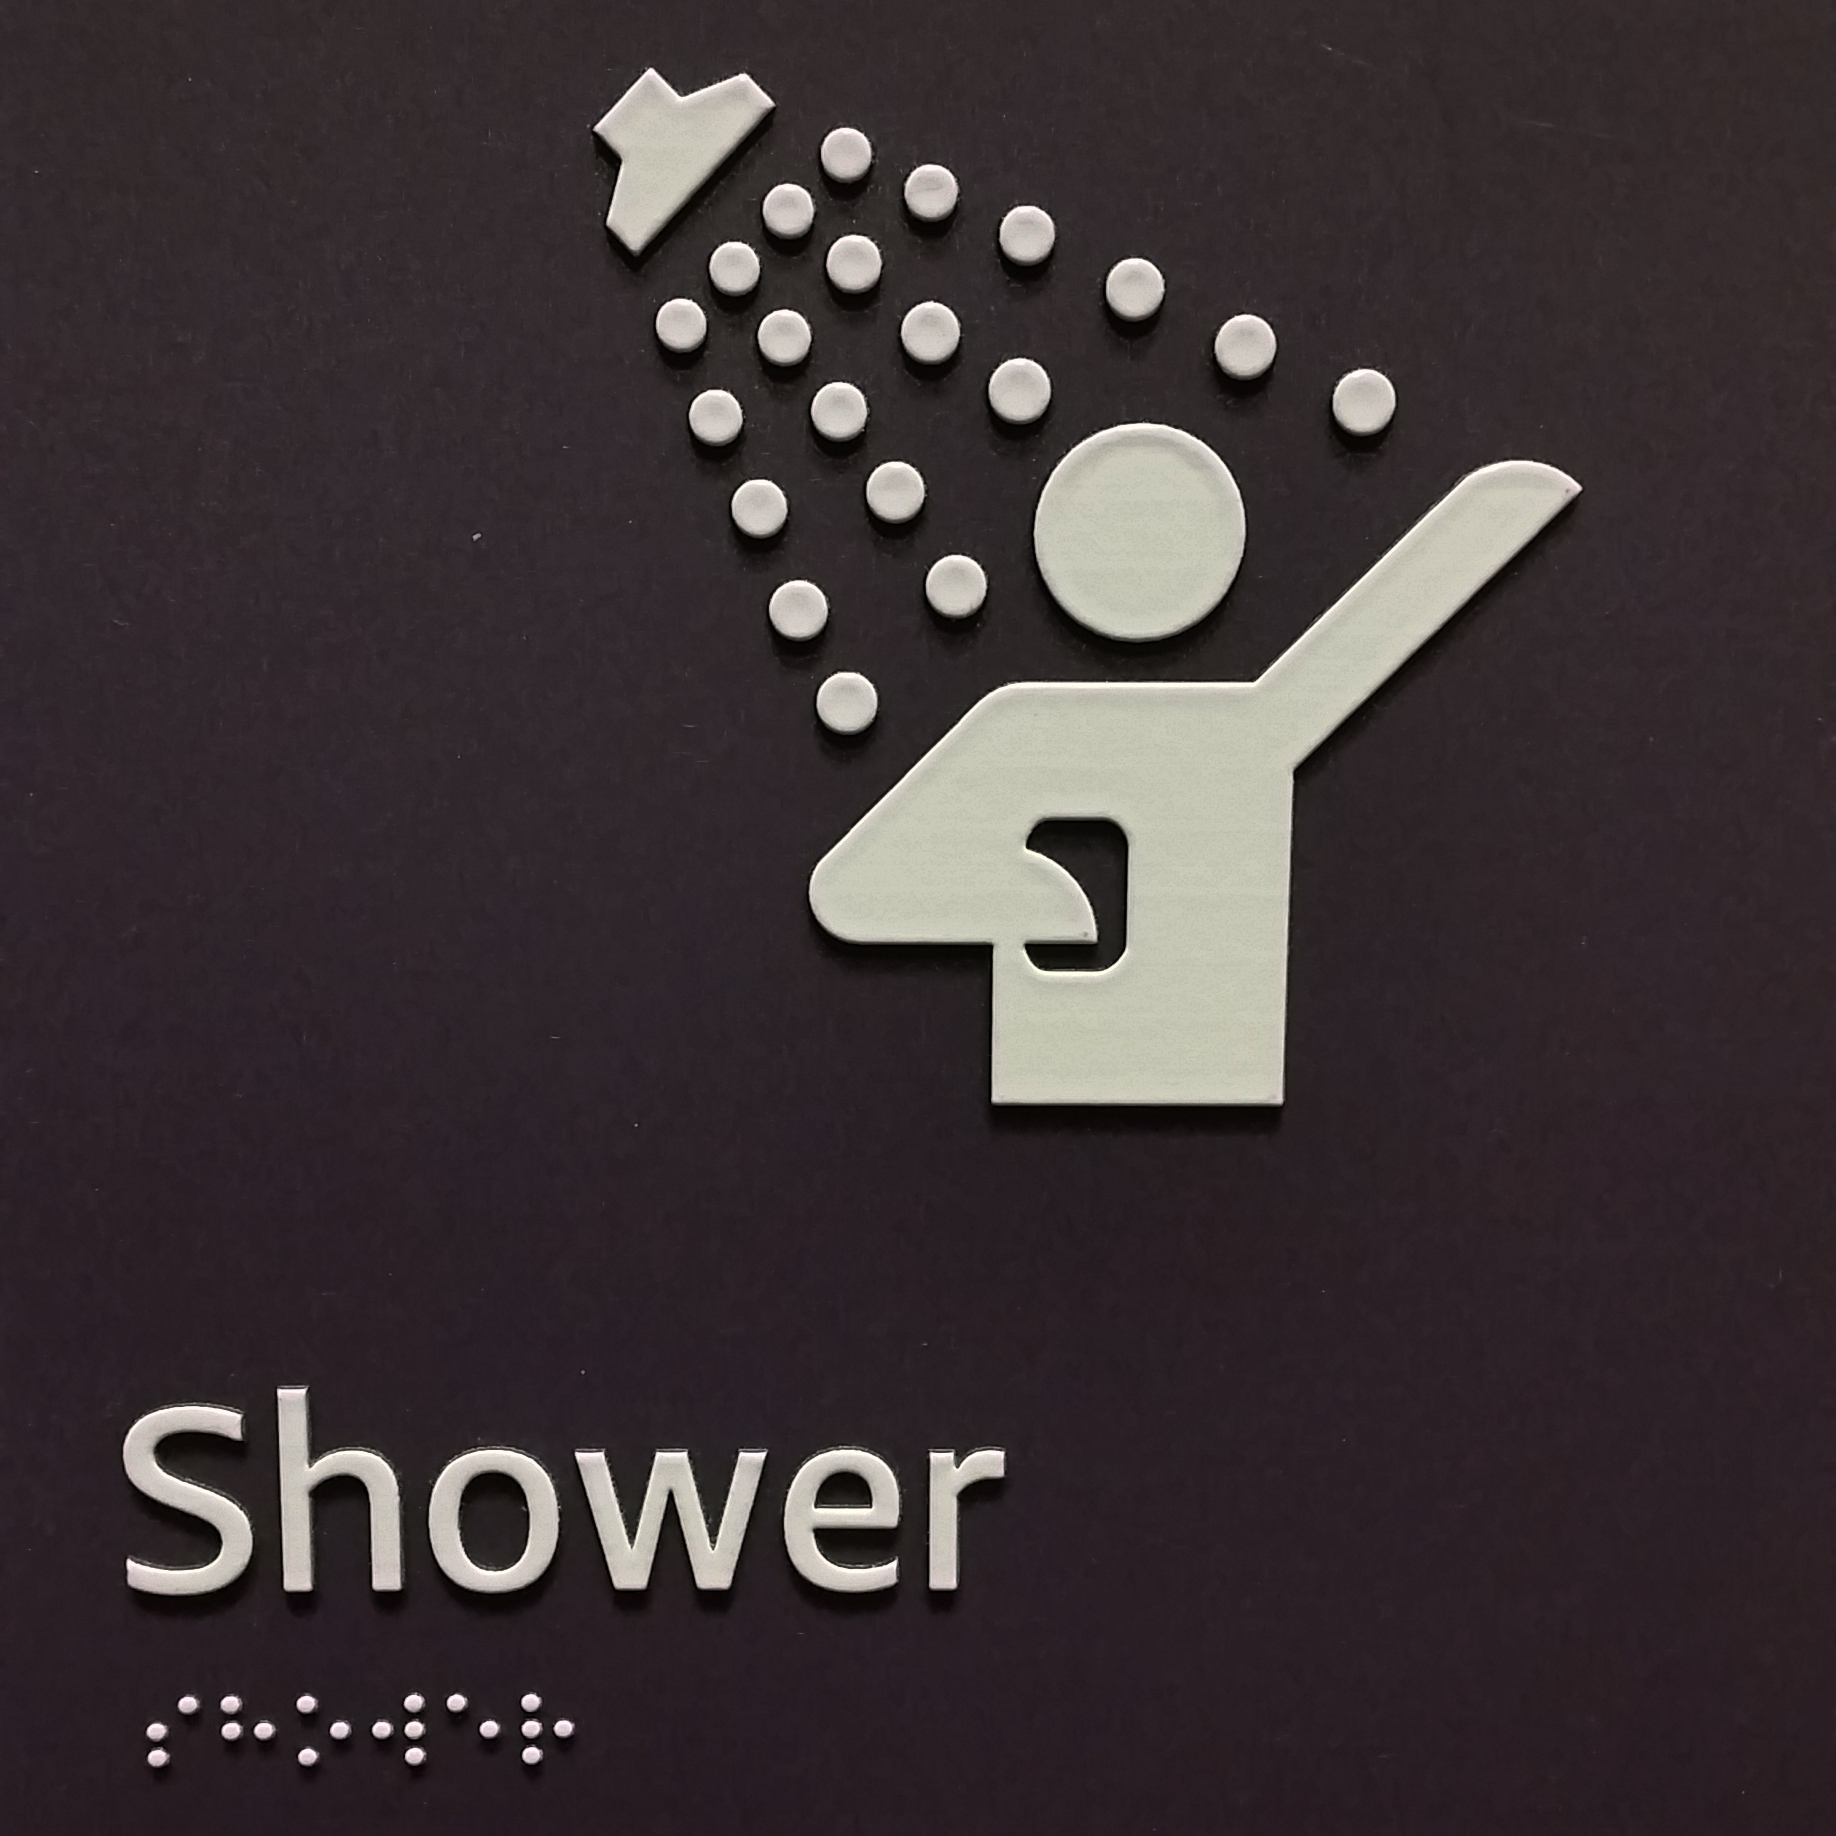 funny picture of a sign where there is someone in the shower with a phone. silly symbol